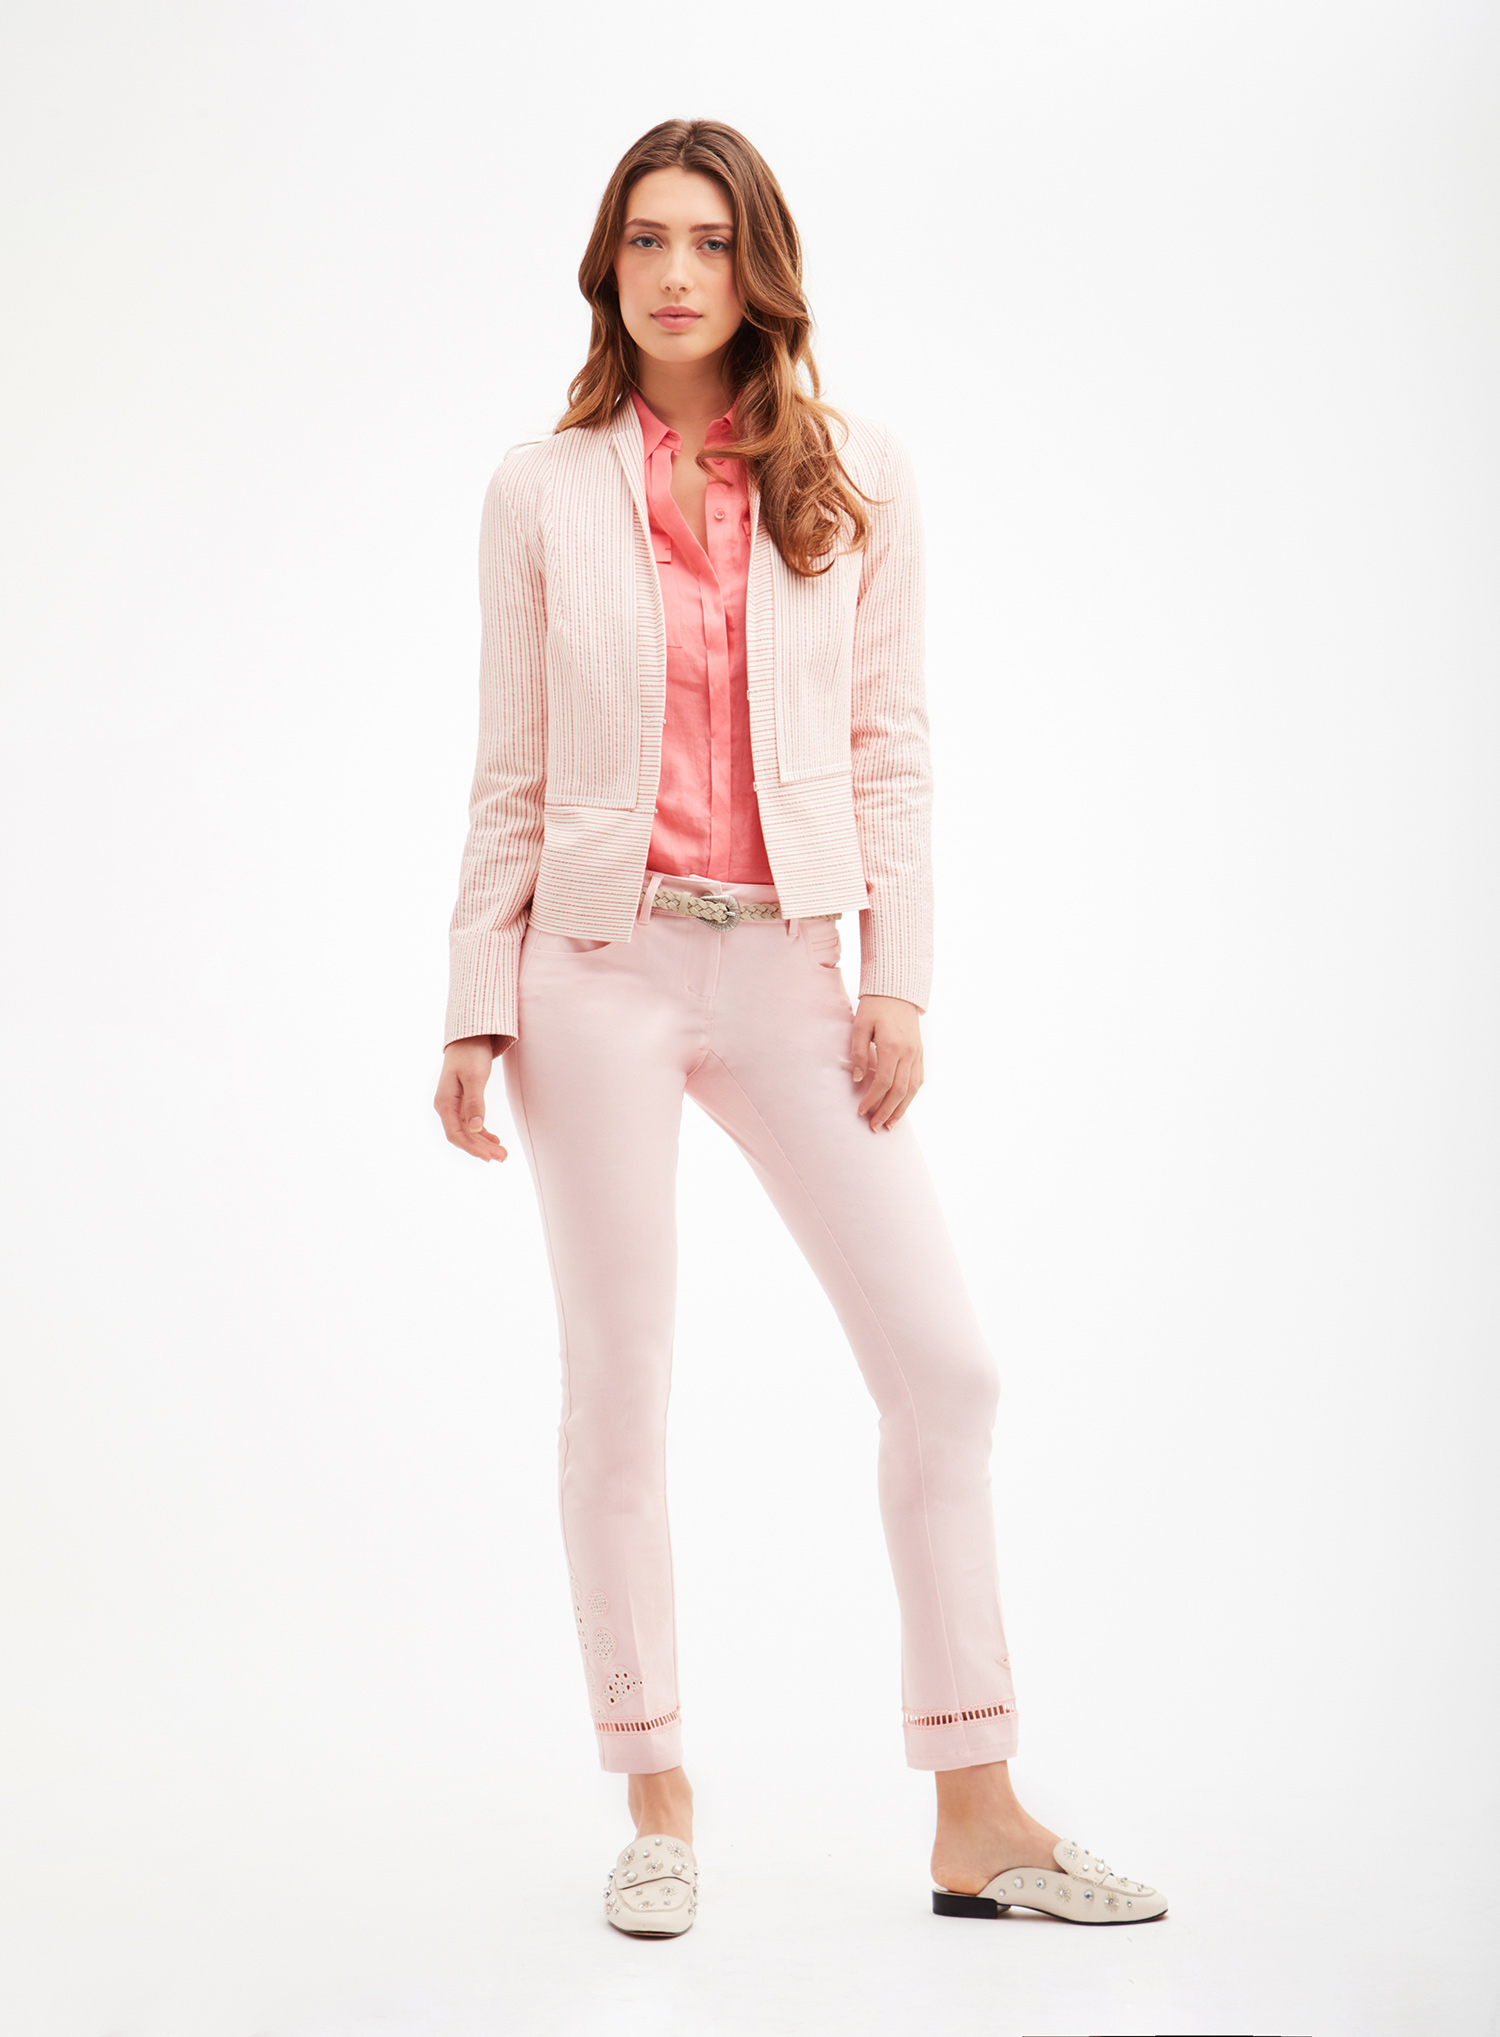 Airy Stretch Jeans from the Carlisle Collection